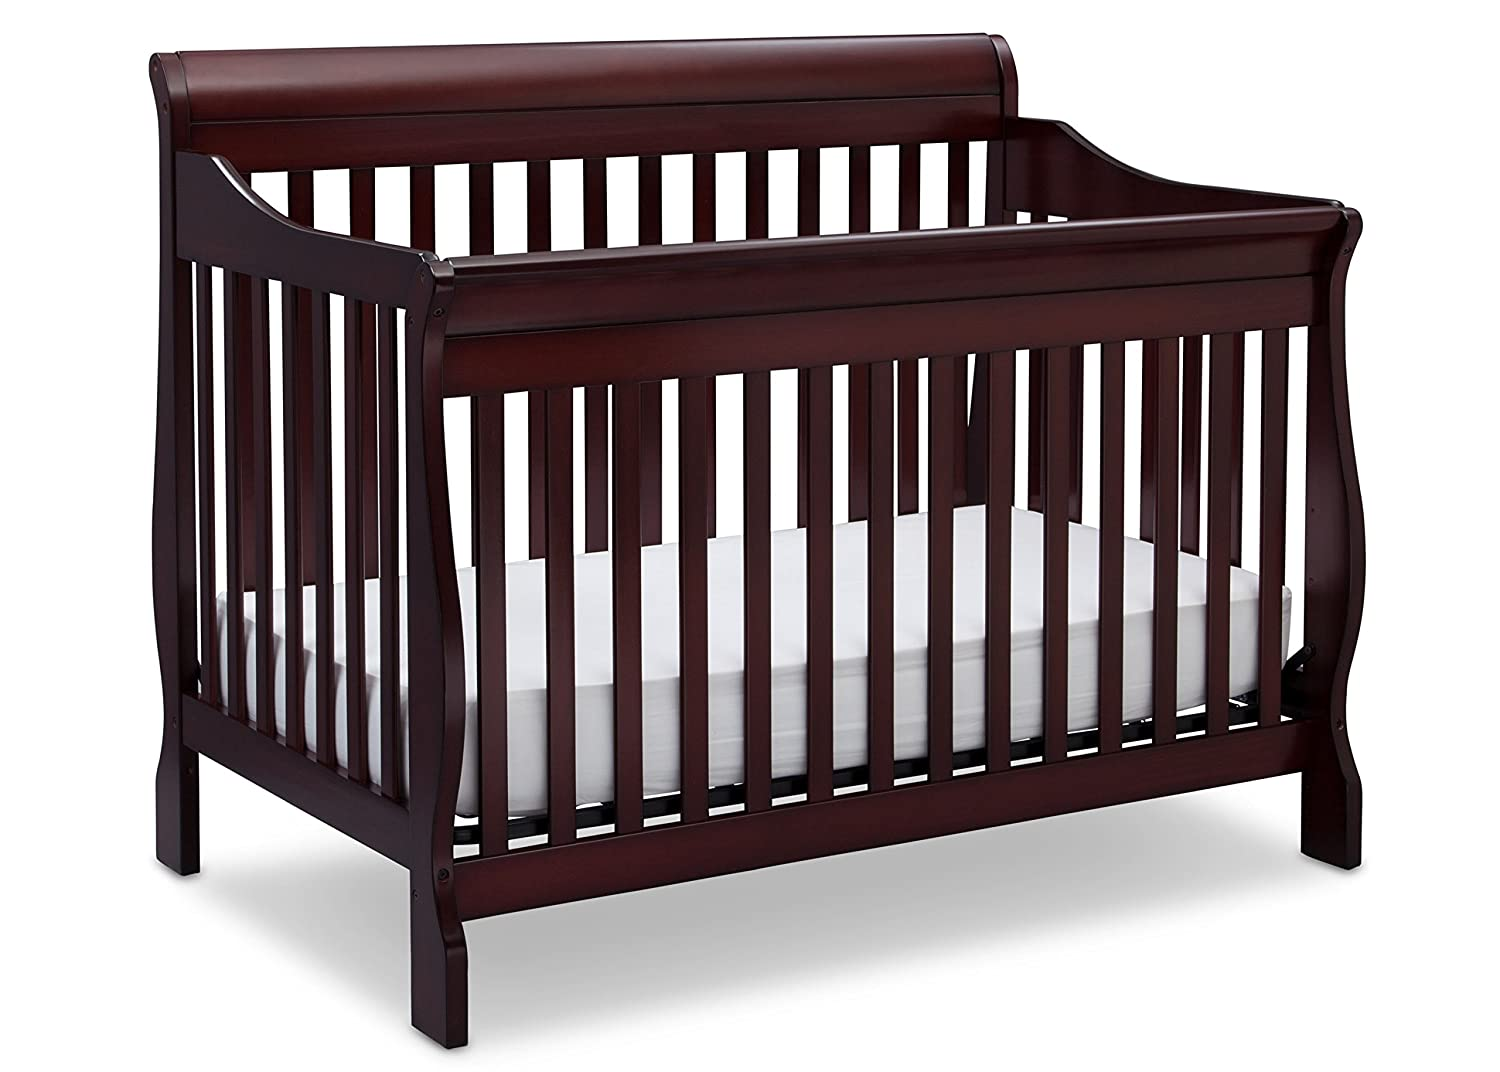 convertible baby cribs. Amazon.com : Delta Children Canton 4-in-1 Convertible Baby Crib, Espresso Cherry Cribs V